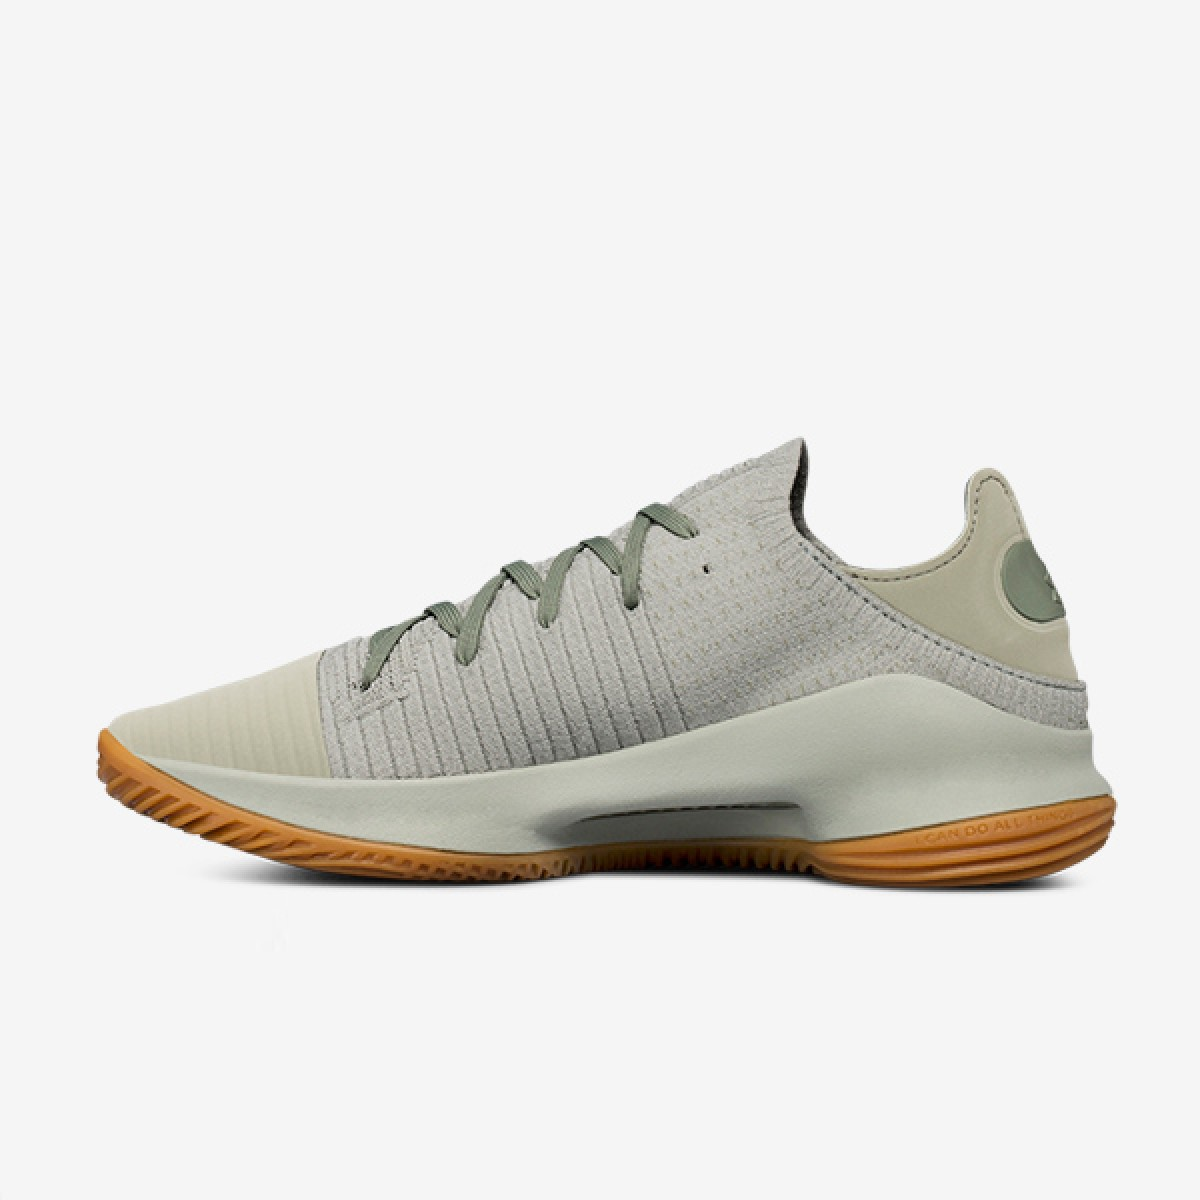 Under Armour Curry 4 Low 'Grove Green' 3000083-301